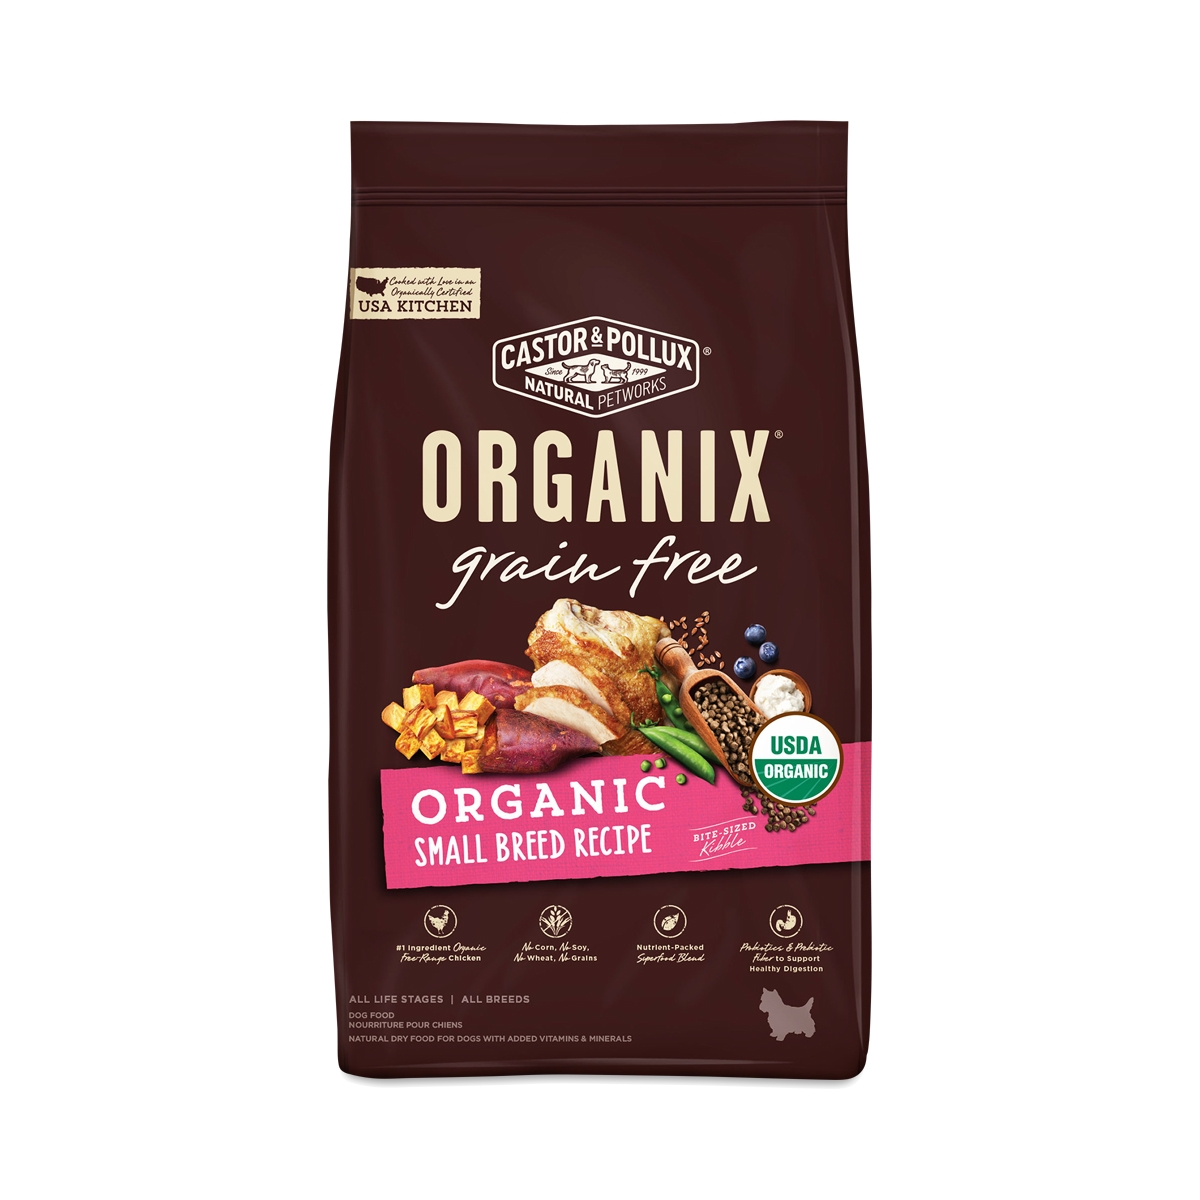 Castor pollux organix grain free organic small breed dog food castor pollux organix grain free organic small breed dog food recipe thrive market forumfinder Image collections